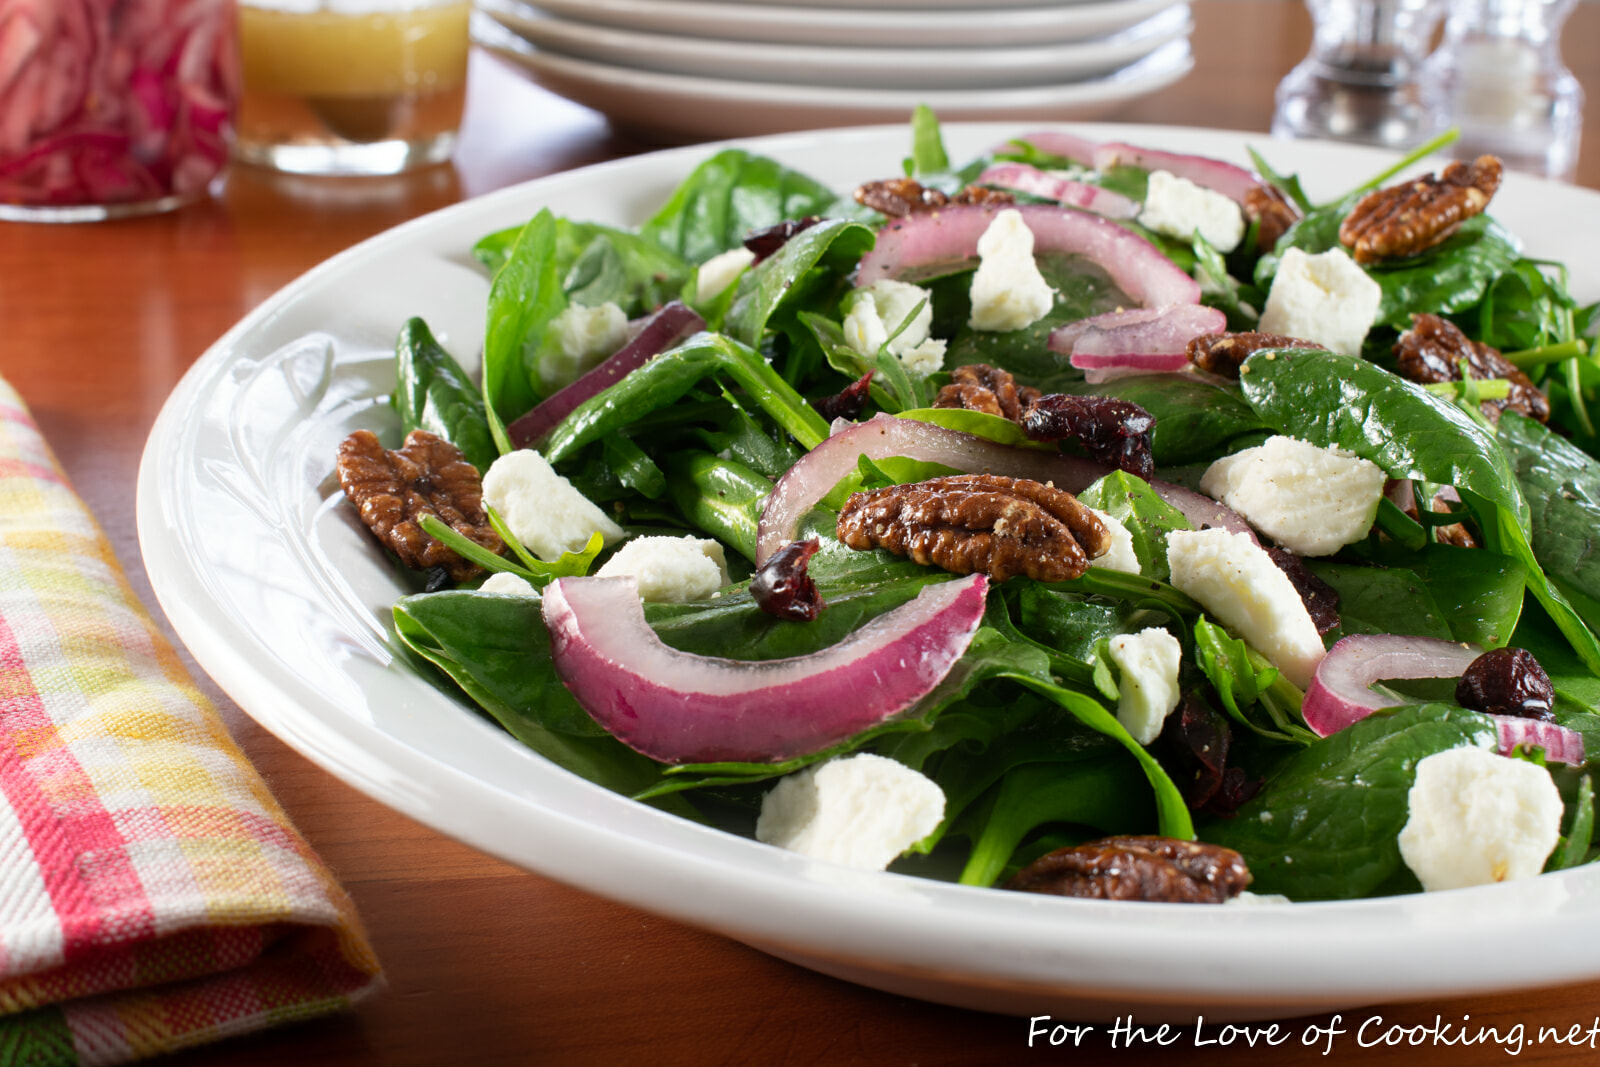 Spinach & Arugula Salad with Marinated Onion, Feta, Cranberry, and Candied Pecans